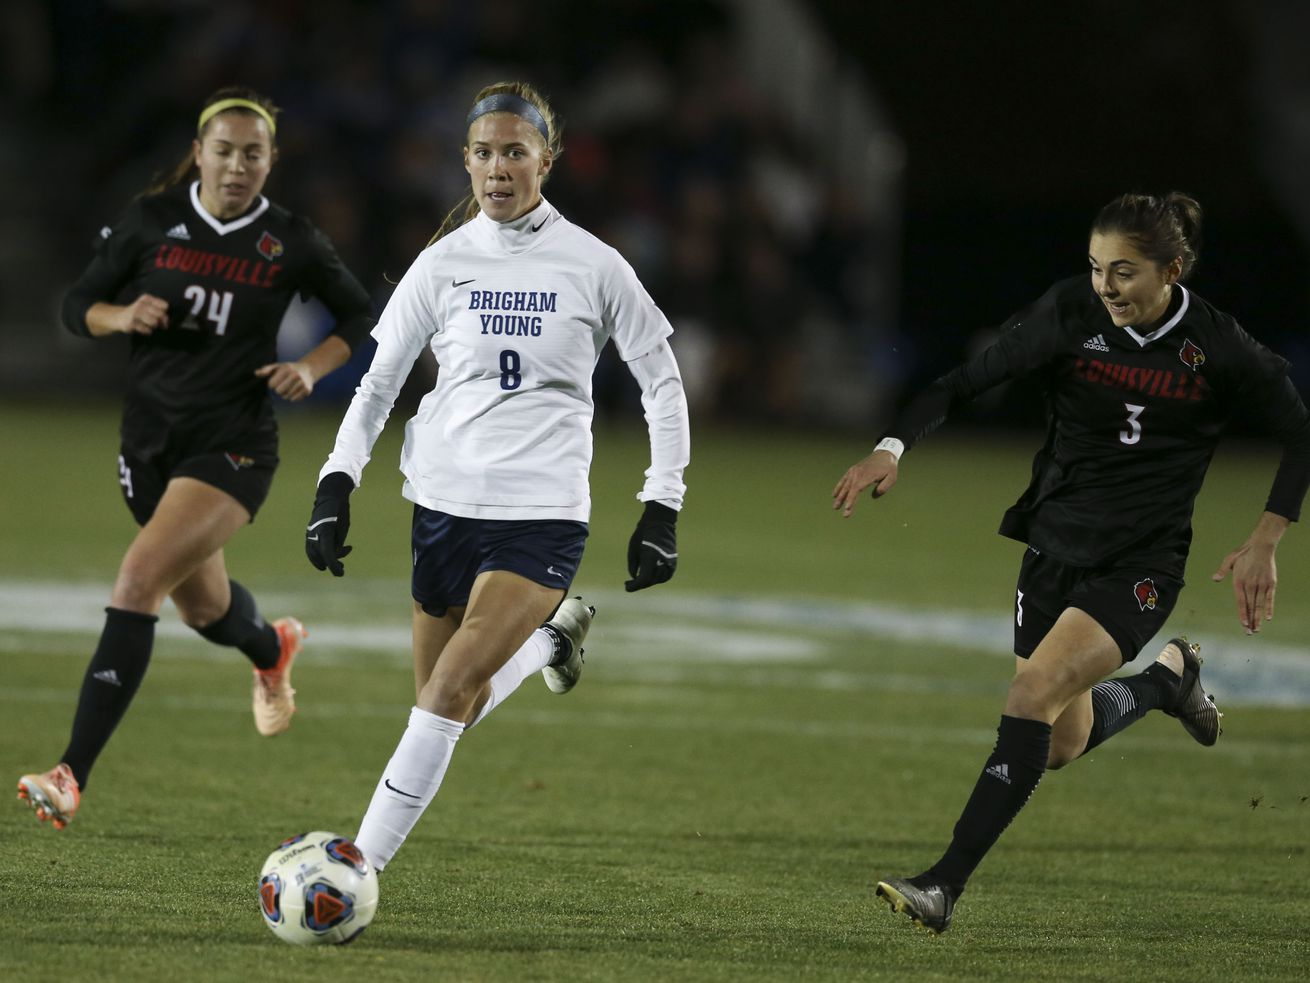 BYU's Mikayla Colohan drives past Louisville in the NCAA soccer tournament in Provo on Thursday, Nov. 21, 2019.